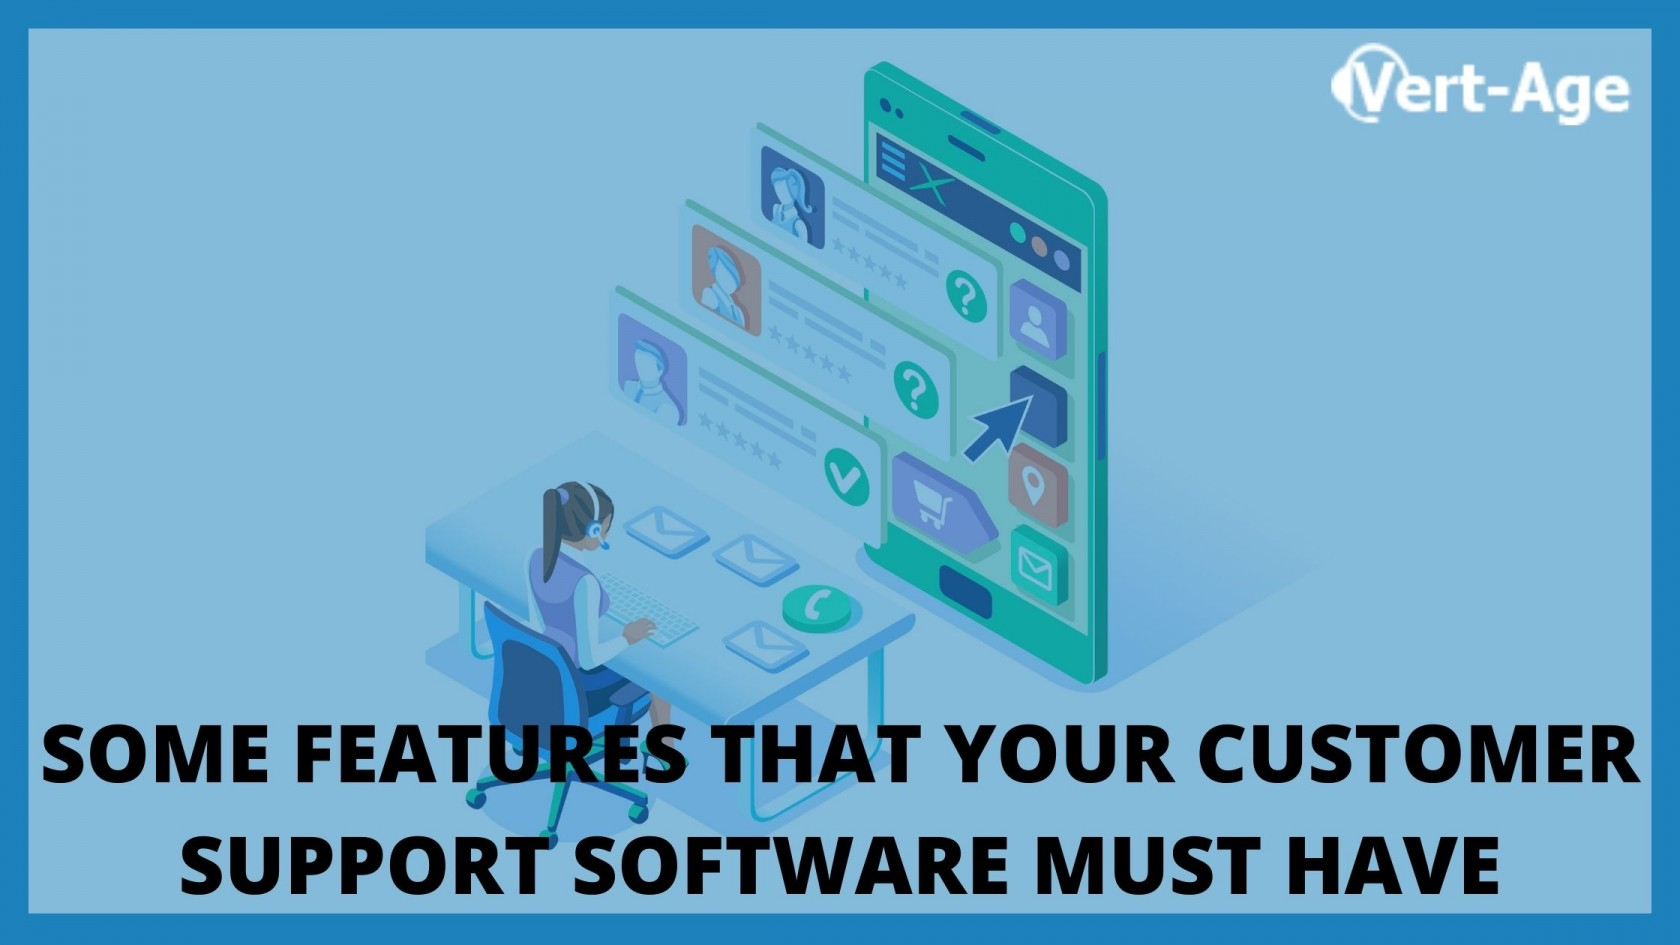 customer support software Vert-age